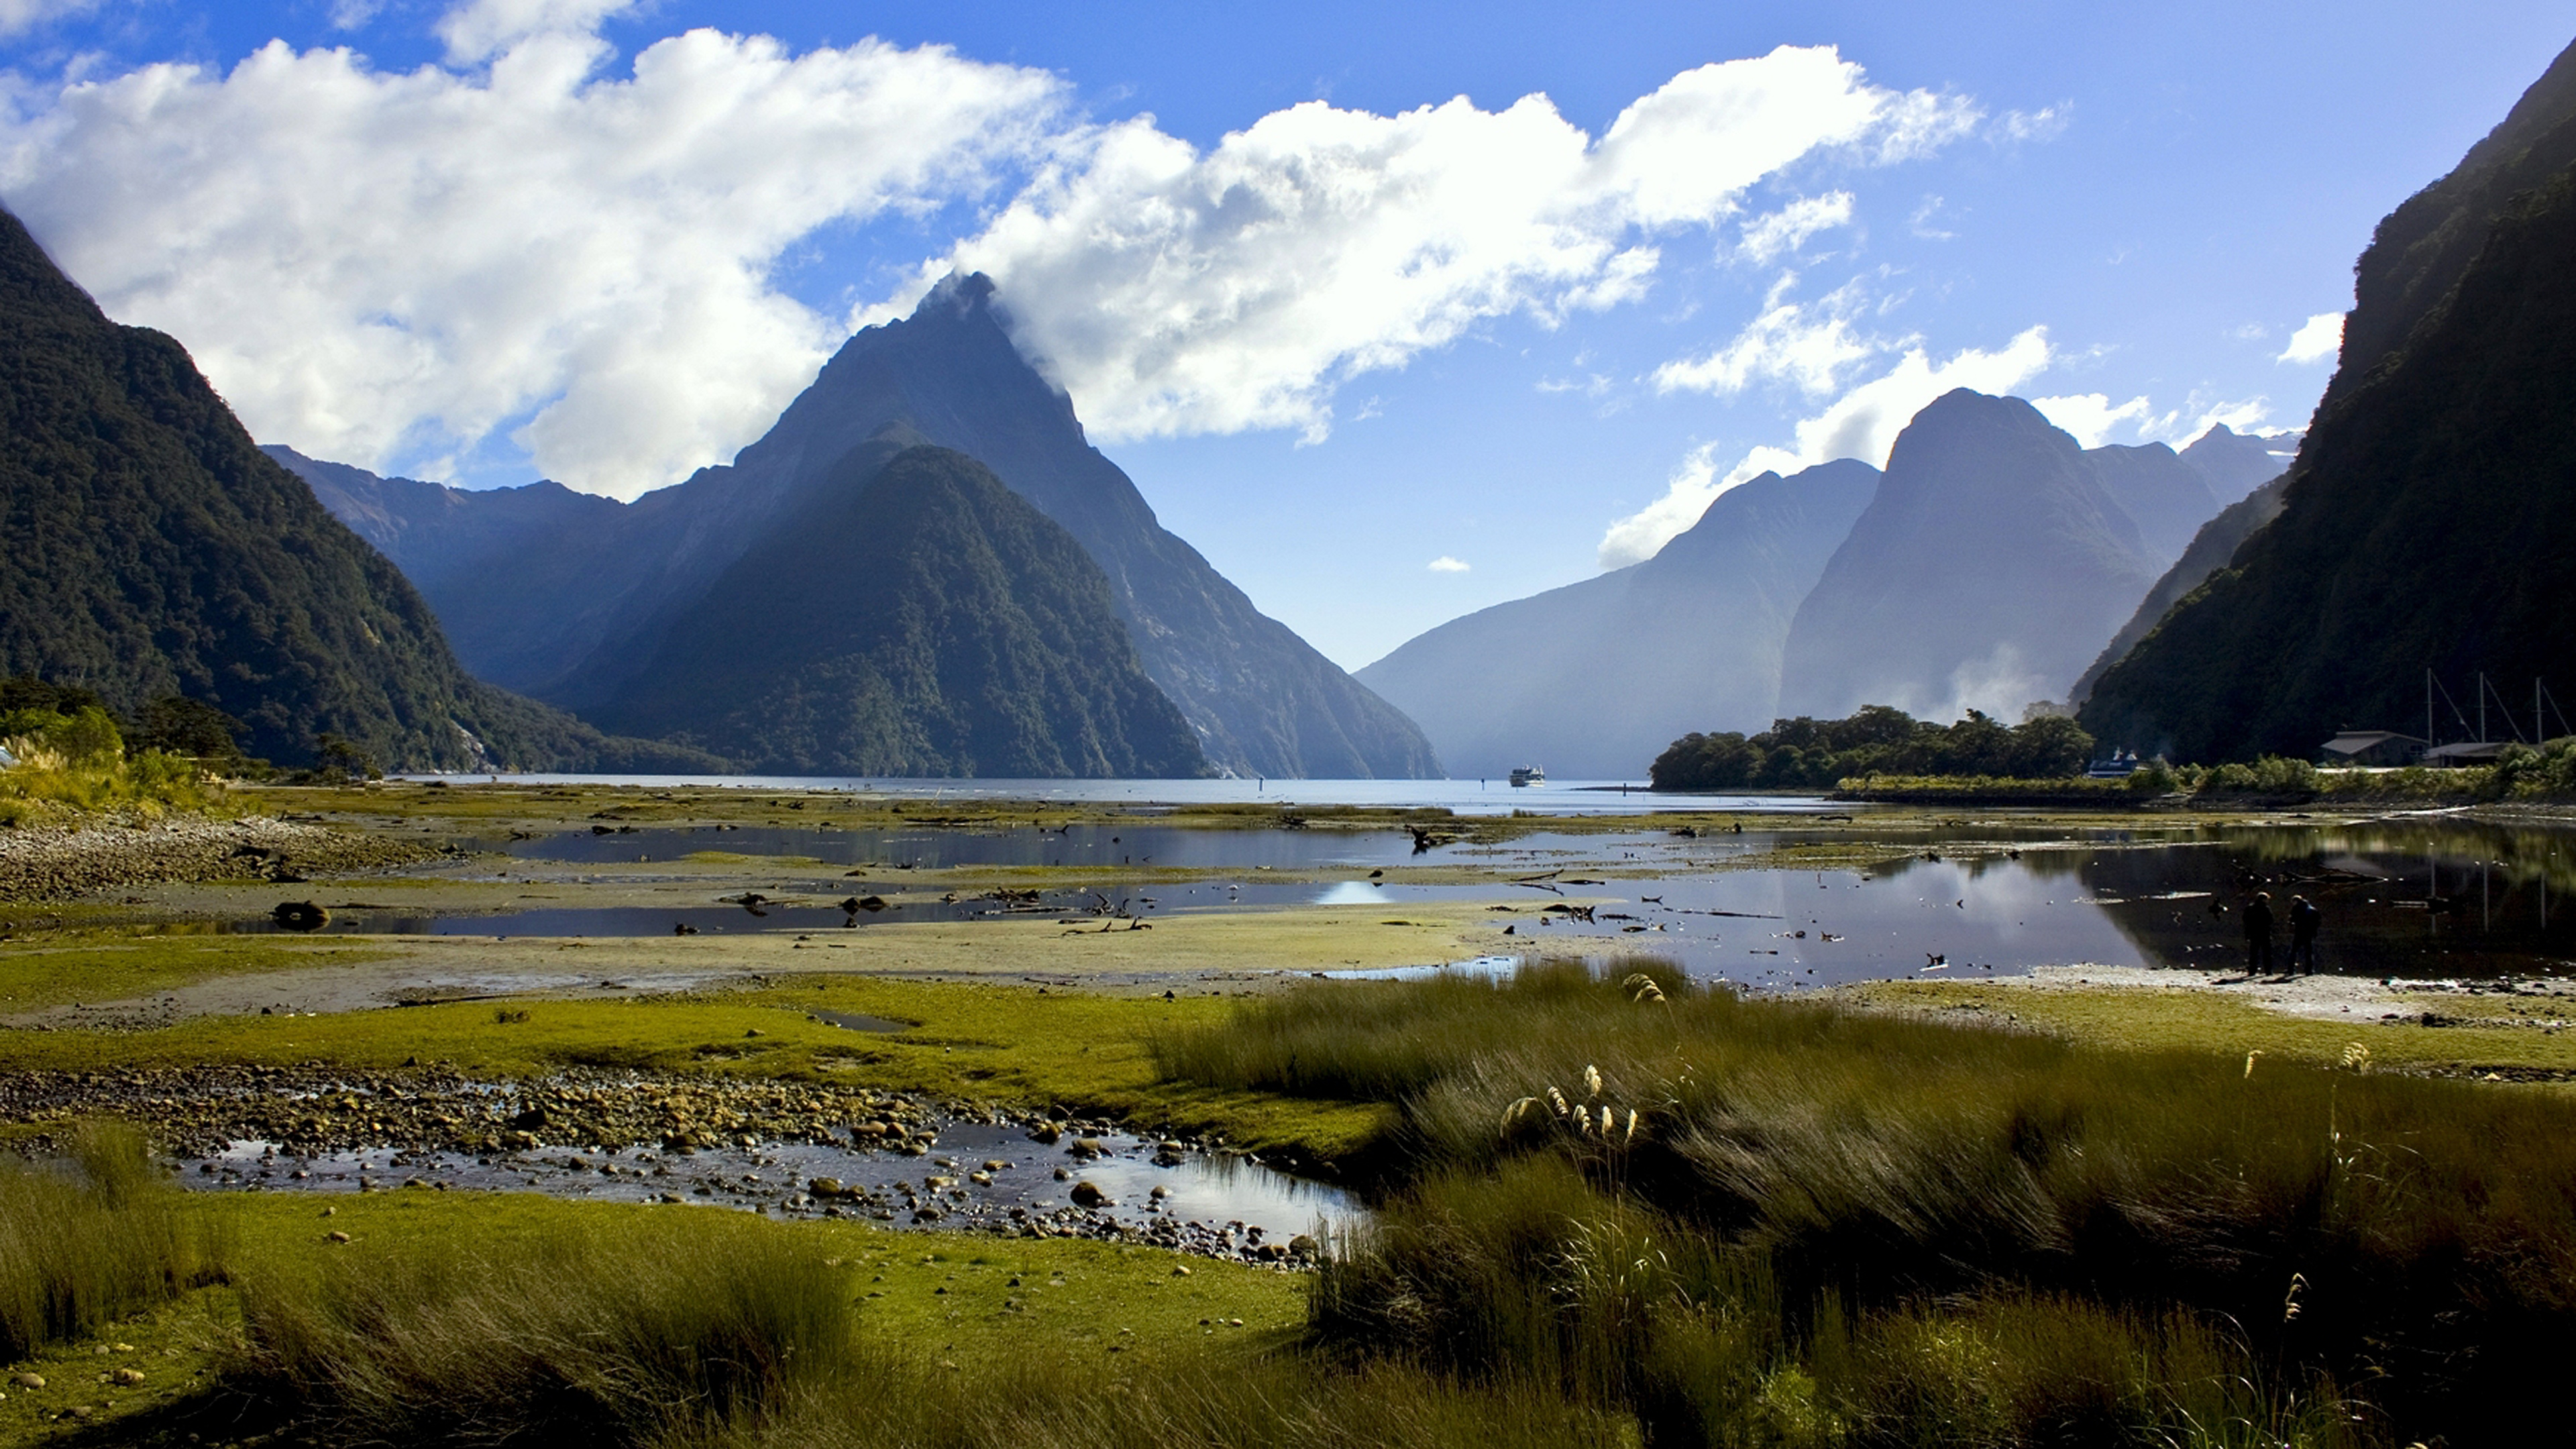 Fall Winter Iphone Wallpaper Milford Sound Or Piopiotahi In Maori Is Fjord Southwest Of